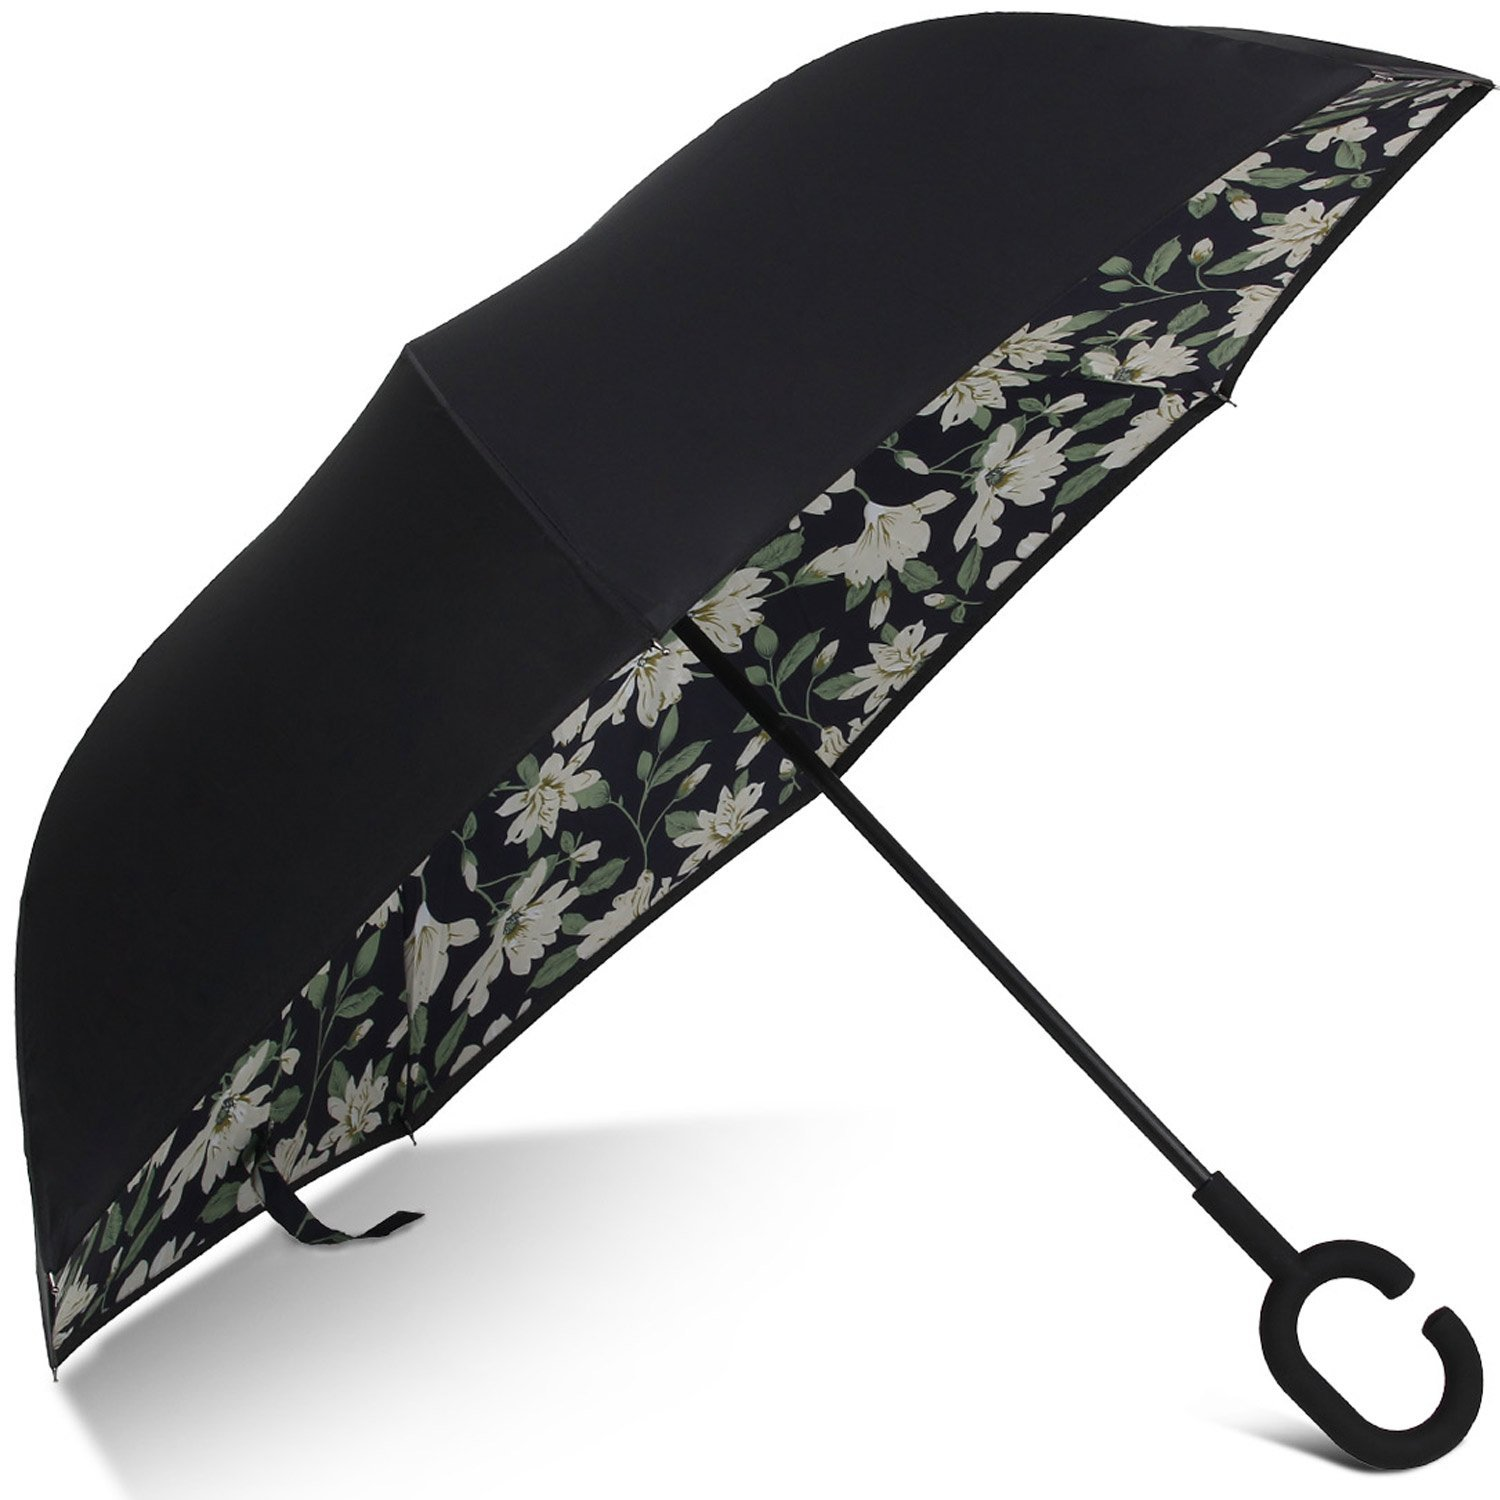 Skeleton Dinosaur Pattern Double Layer Windproof UV Protection Reverse Umbrella With C-Shaped Handle Upside-Down Inverted Umbrella For Car Rain Outdoor